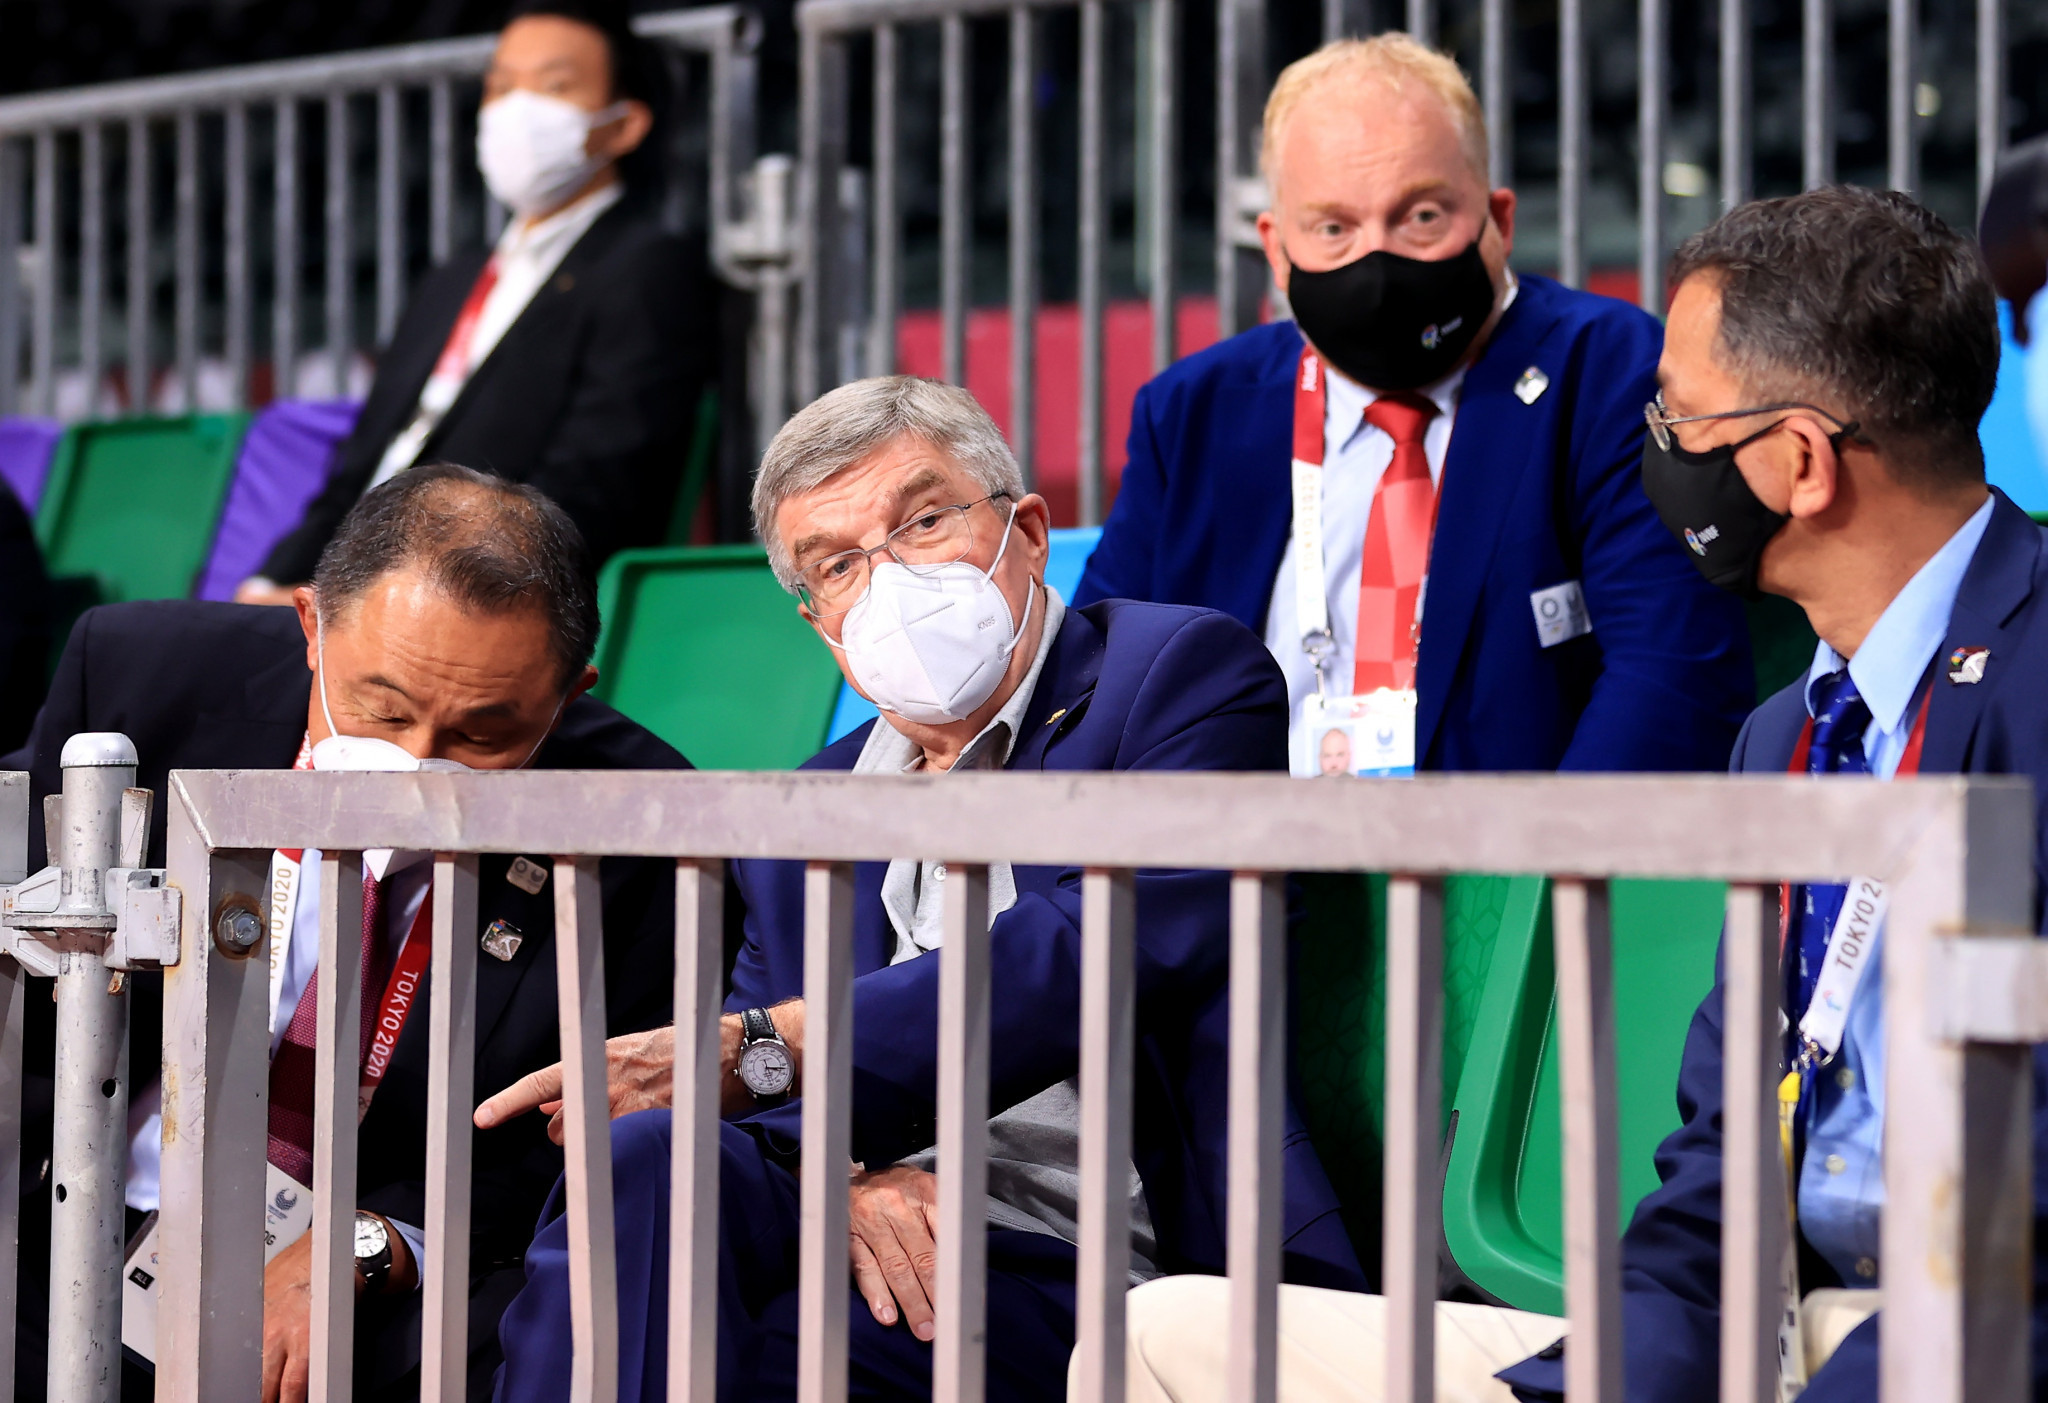 IOC President Thomas Bach attended last night's Opening Ceremony of the Paralympics before visiting a number of Tokyo 2020 venues ©Getty Images